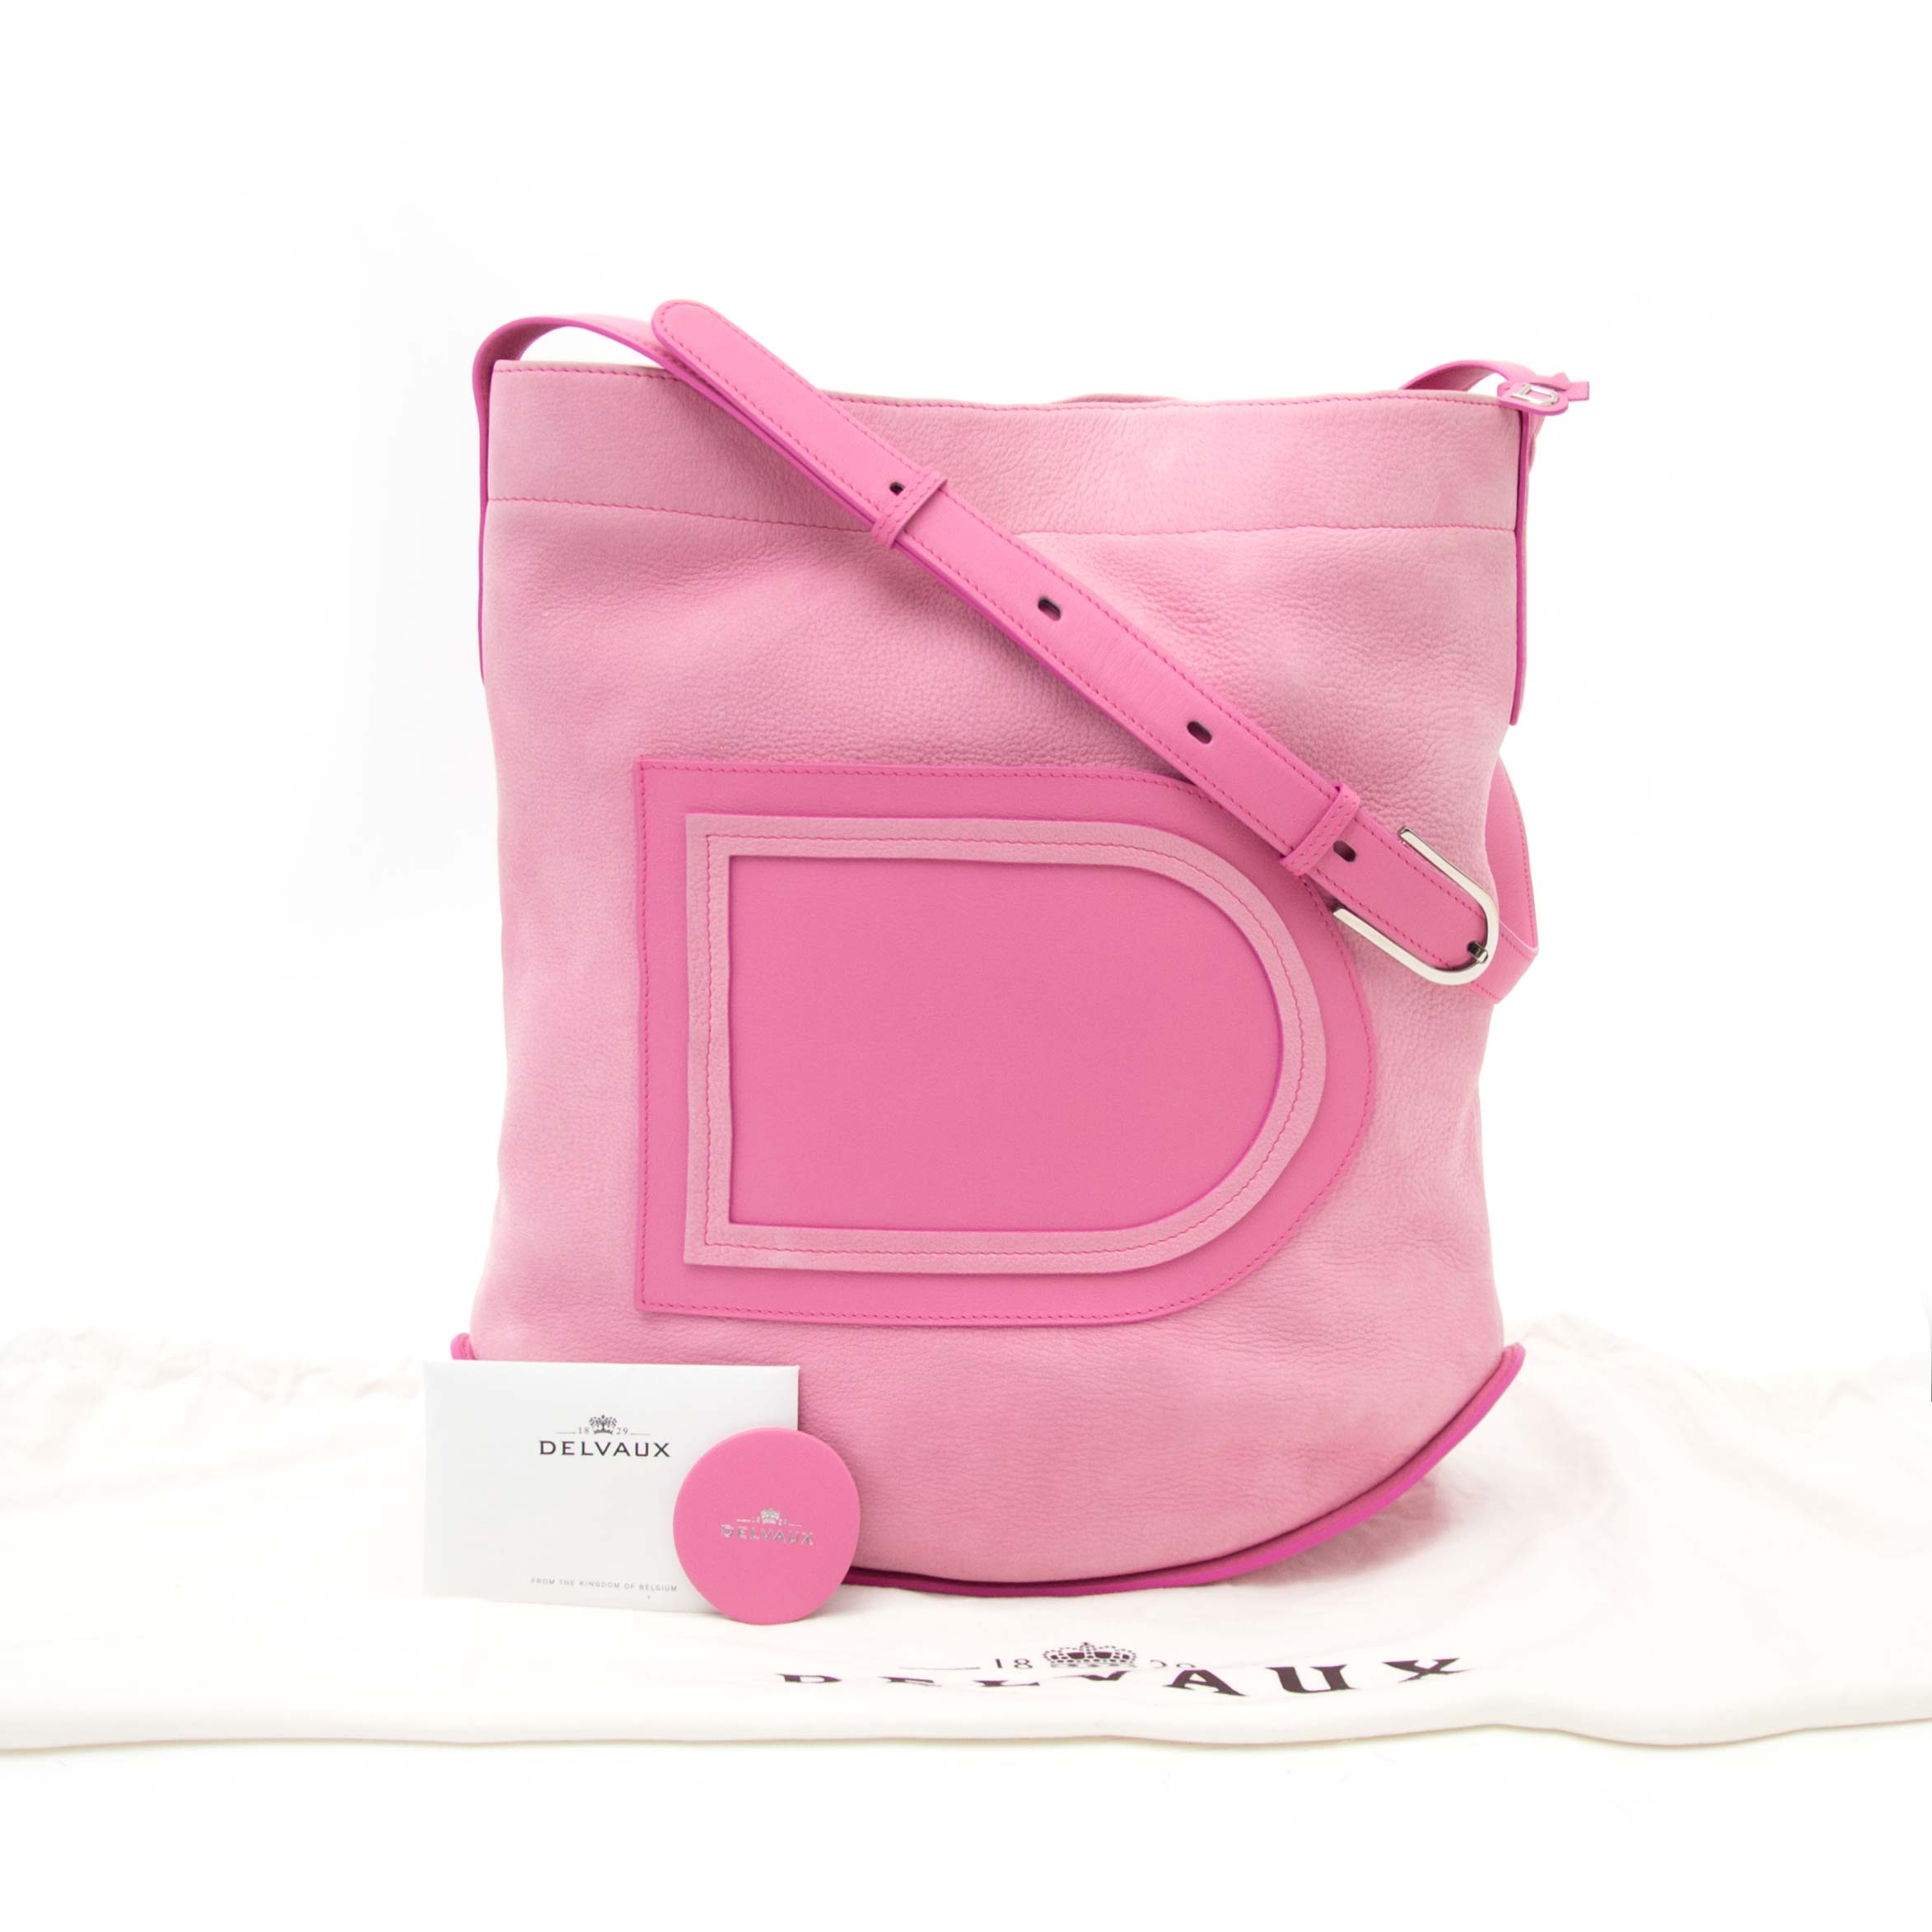 Acheter en ligne chez labellov.com for the best price Delvaux rose allure nubuck le pin